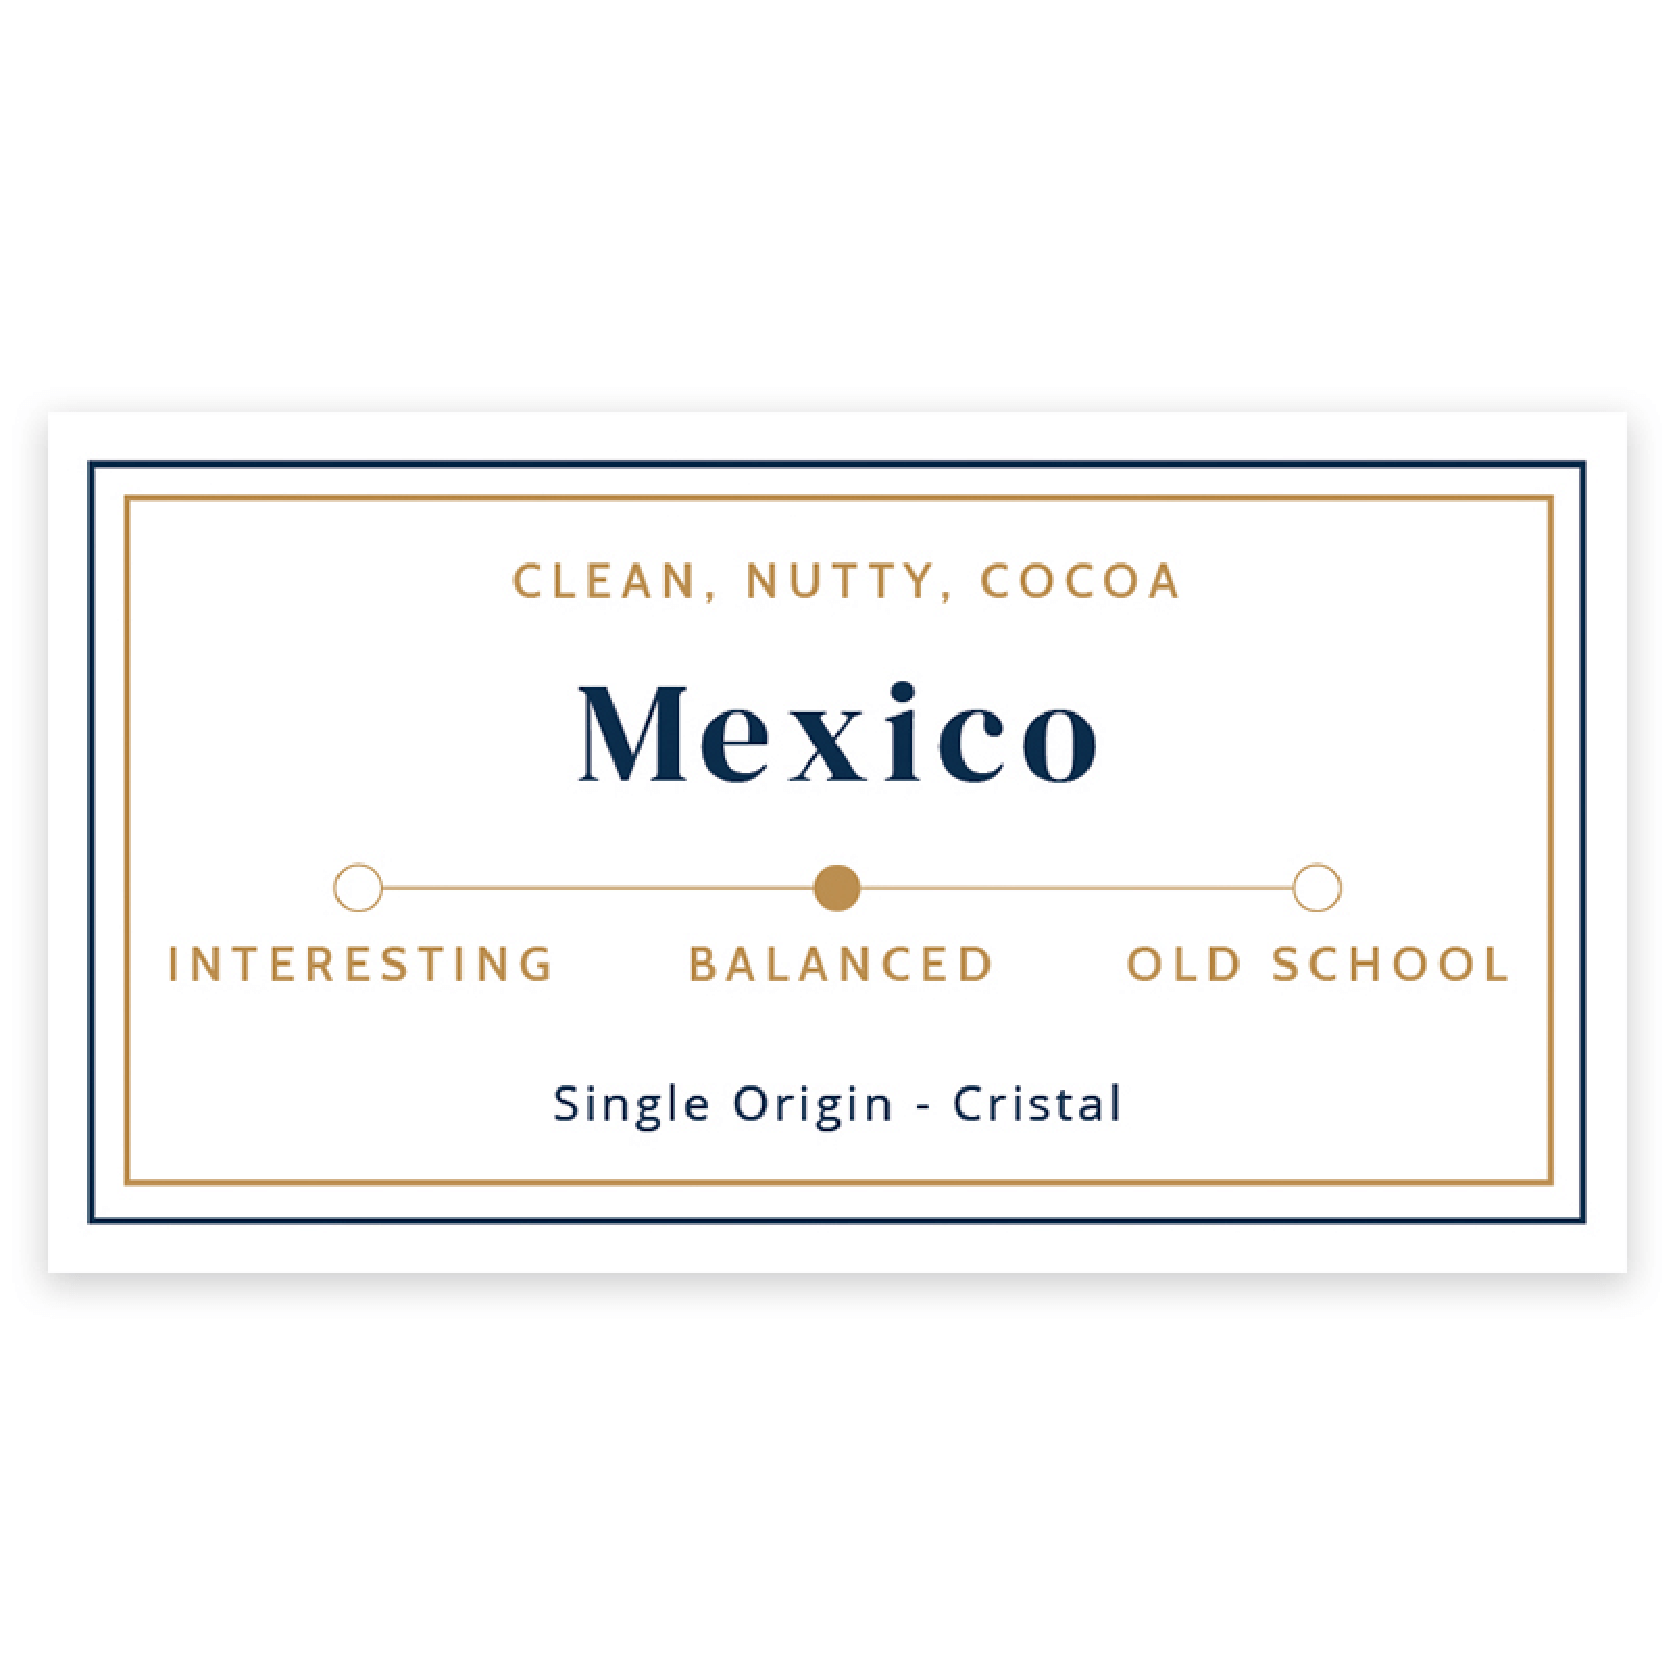 Mexico from Evangelist Roasting Co